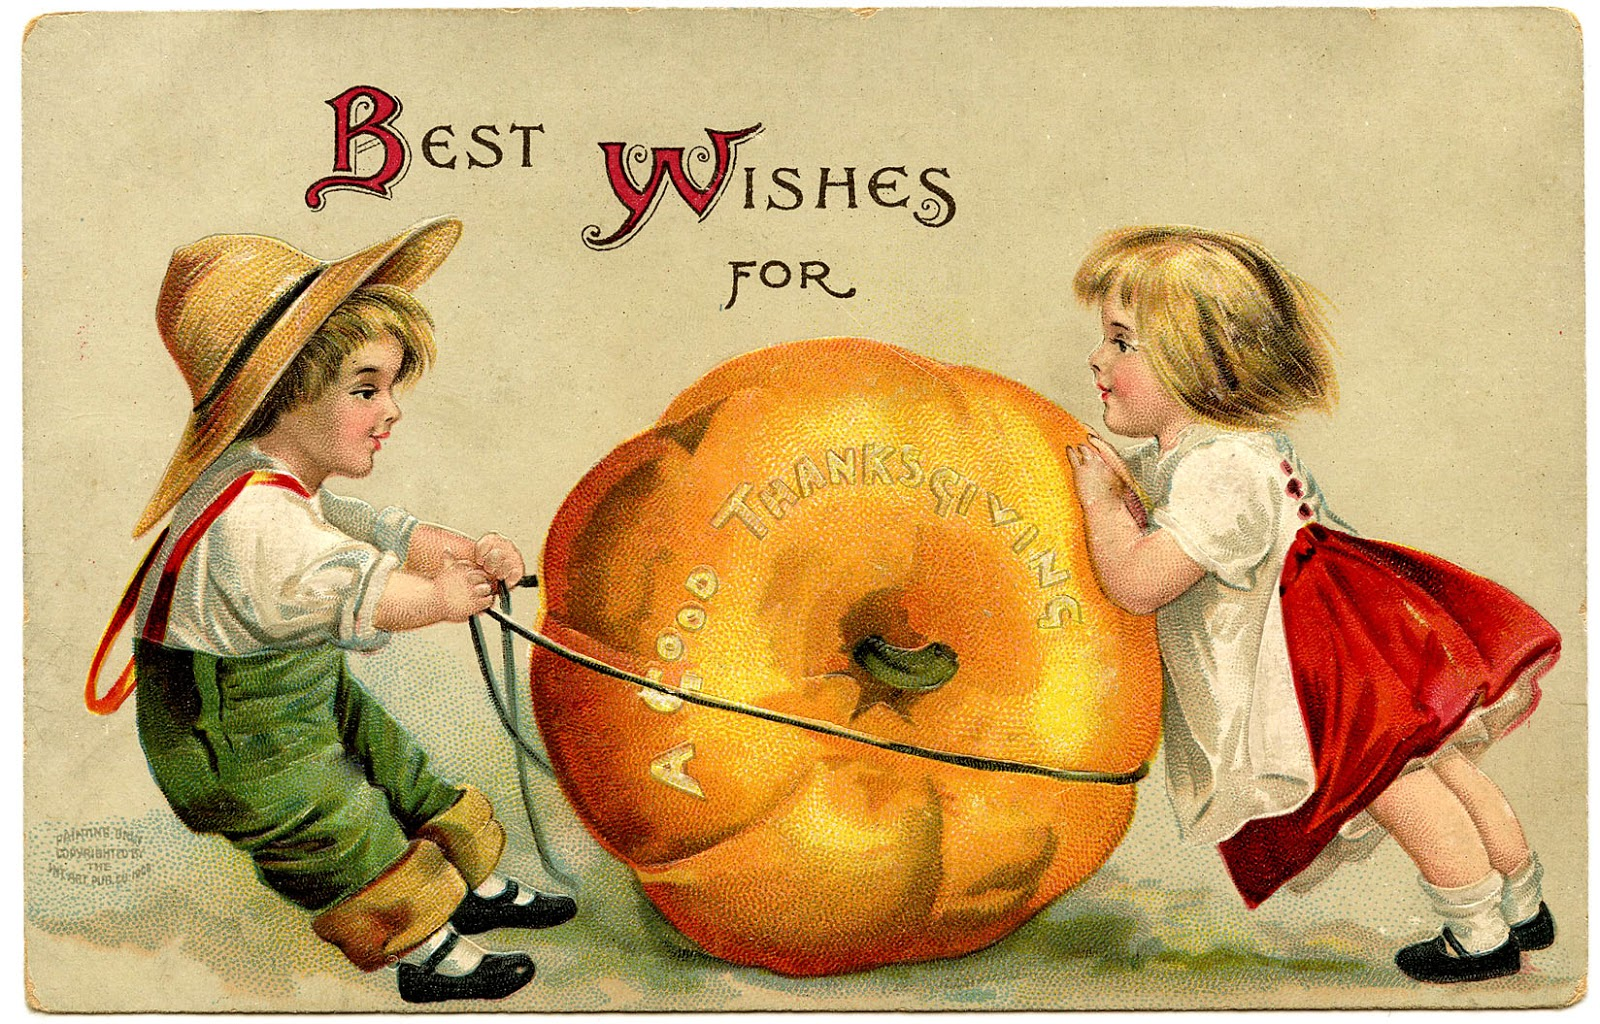 Vintage Thanksgiving Image Cute Kids With Pumpkin The